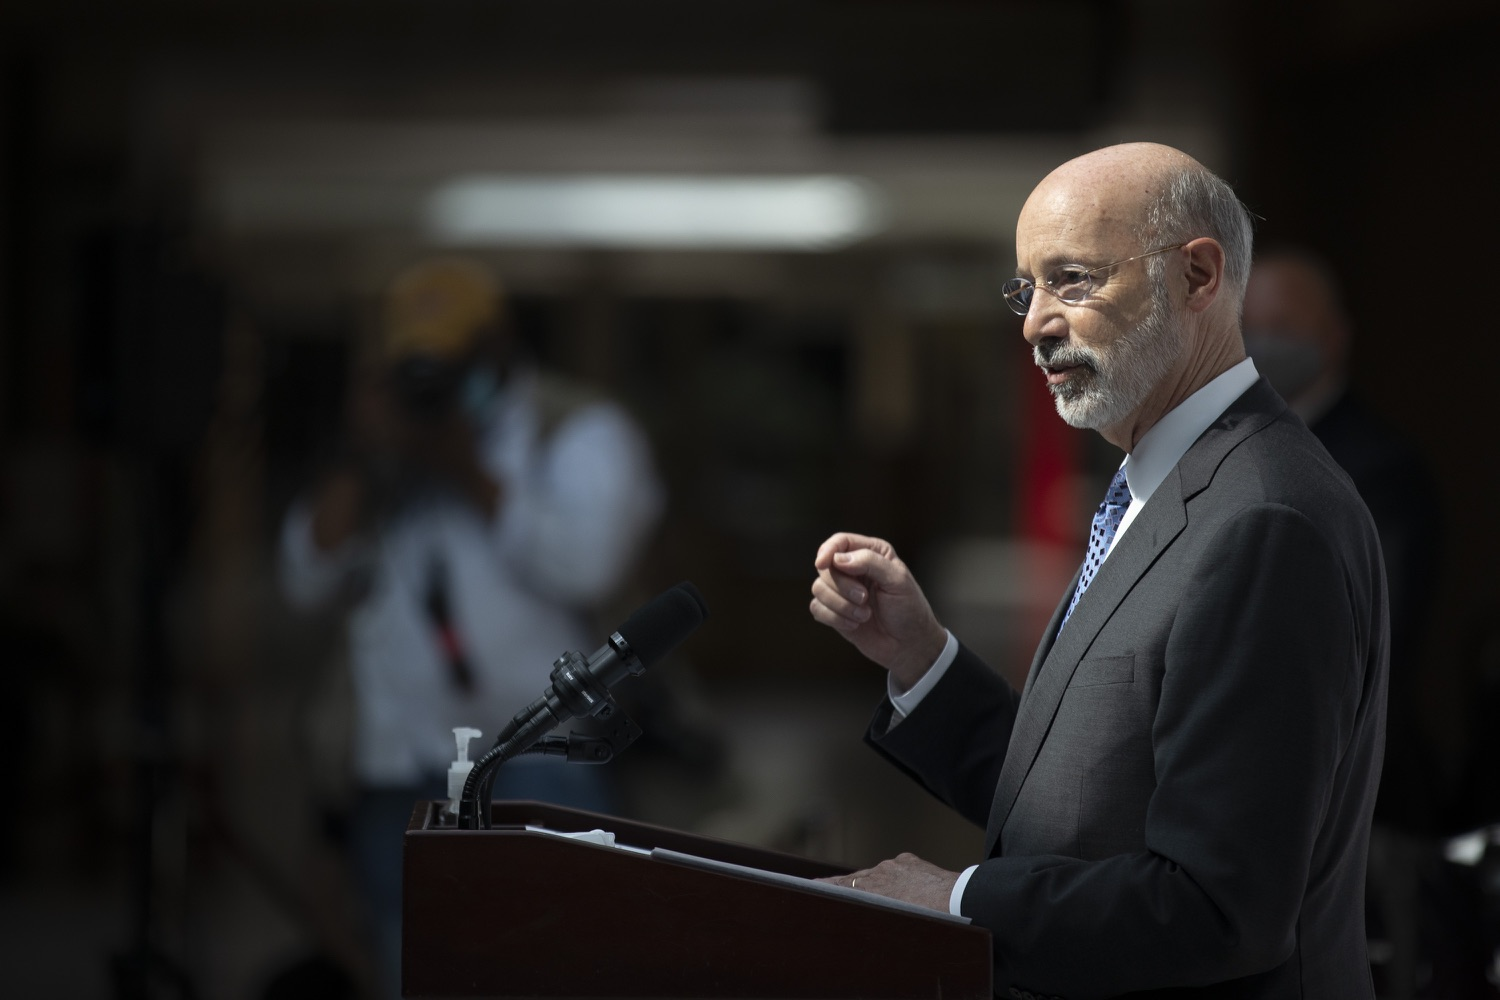 "<a href=""https://filesource.wostreaming.net/commonwealthofpa/photo/18712_gov_vaccines_dz_007.jpg"" target=""_blank"">⇣ Download Photo<br></a>Pennsylvania Governor Tom Wolf speaking with the press.  Continuing to visit COVID-19 vaccine clinics around the state, Governor Tom Wolf toured a clinic at the Washington Crown Center in Washington County today. The clinic is one of three operated by the Washington Health System (WHS) serving rural communities in southwestern Pennsylvania.  North Franklin Township, PA  April 28, 2021"